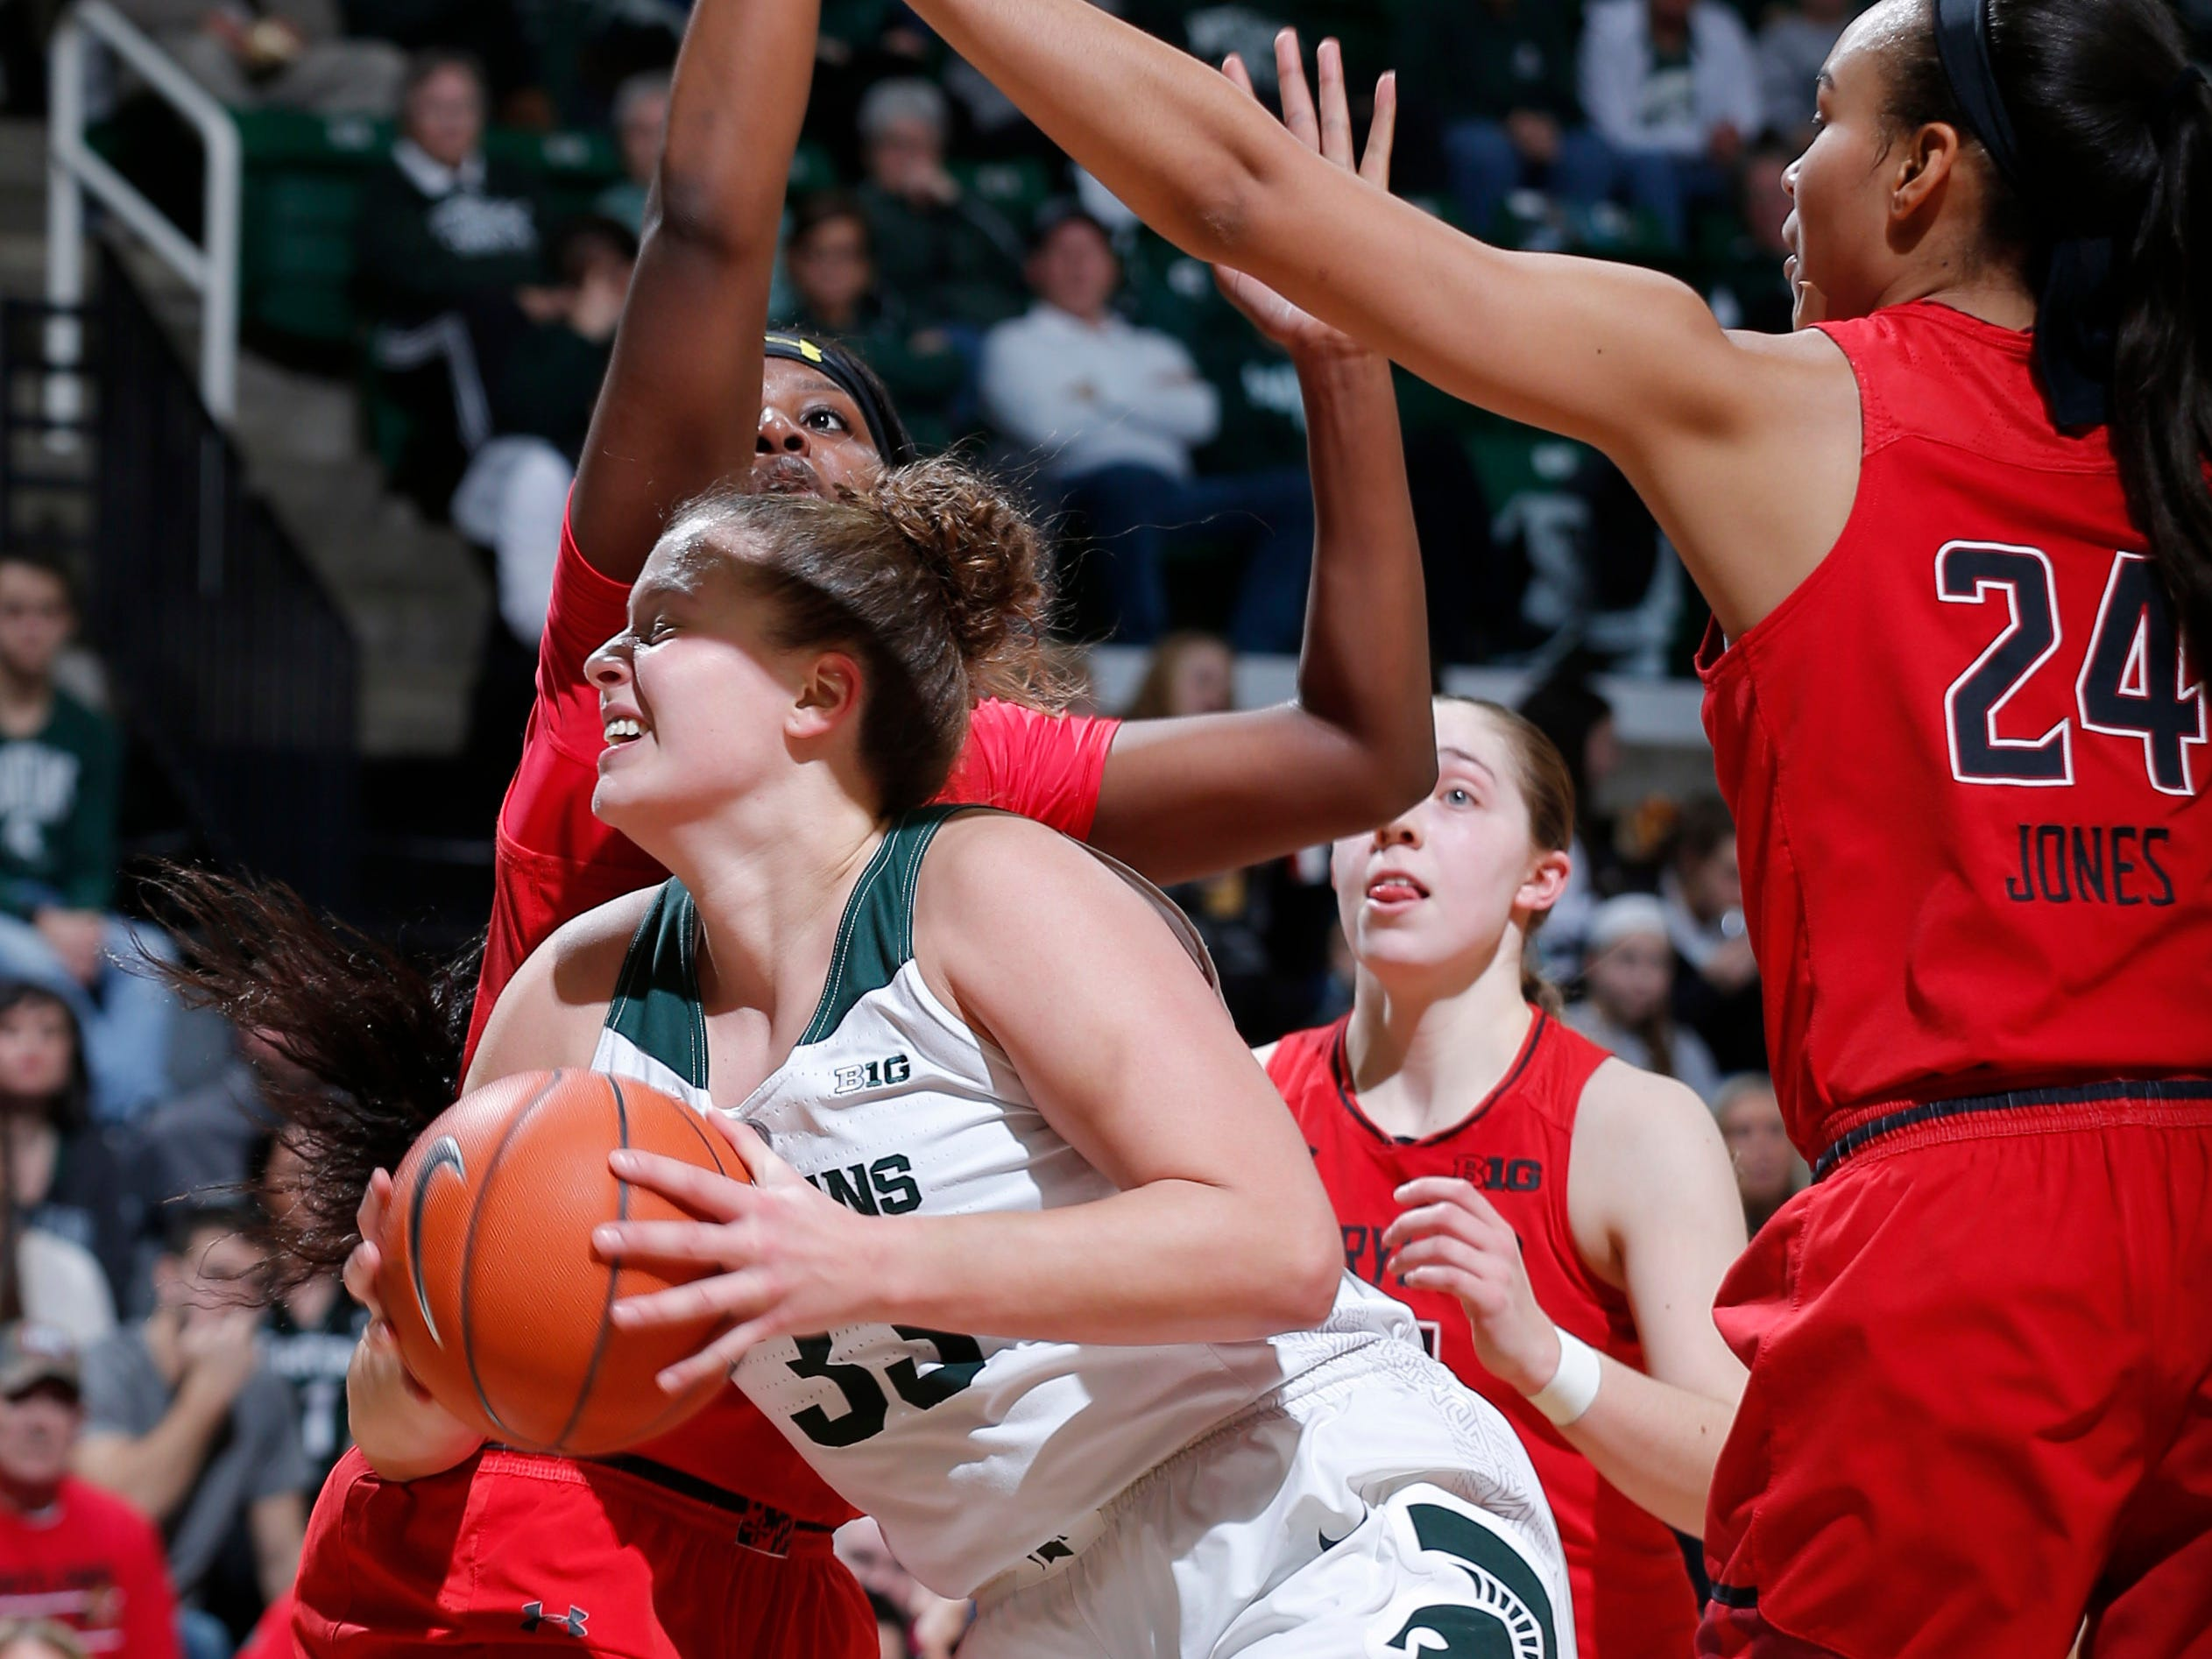 Michigan State's Jenna Allen looks for a shot against Maryland's Stephanie Jones, right, and Briana Fraser, Thursday, Jan. 17, 2019, in East Lansing, Mich.